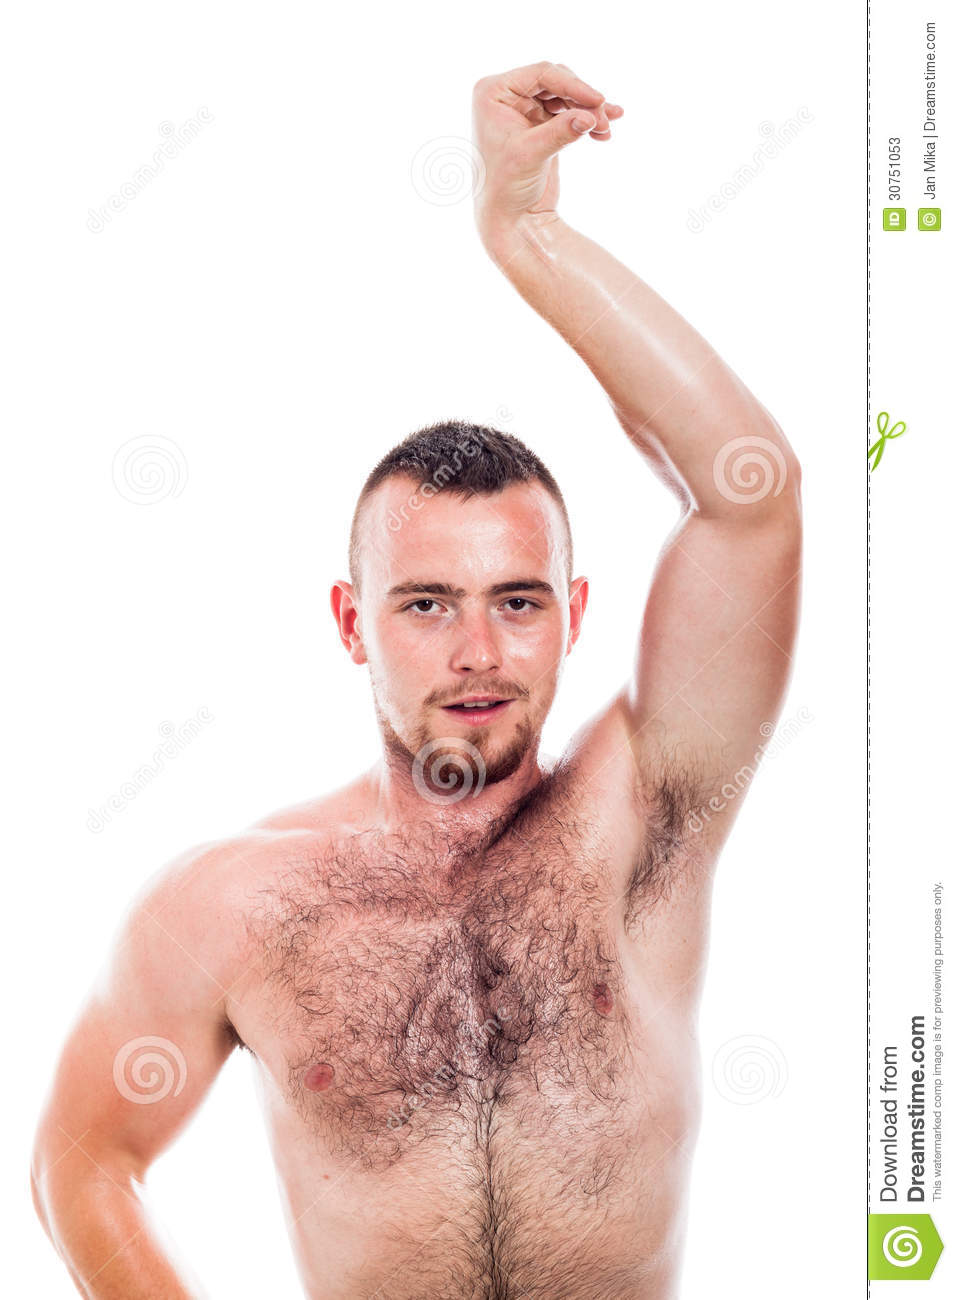 Hairy Men Thumbs 89